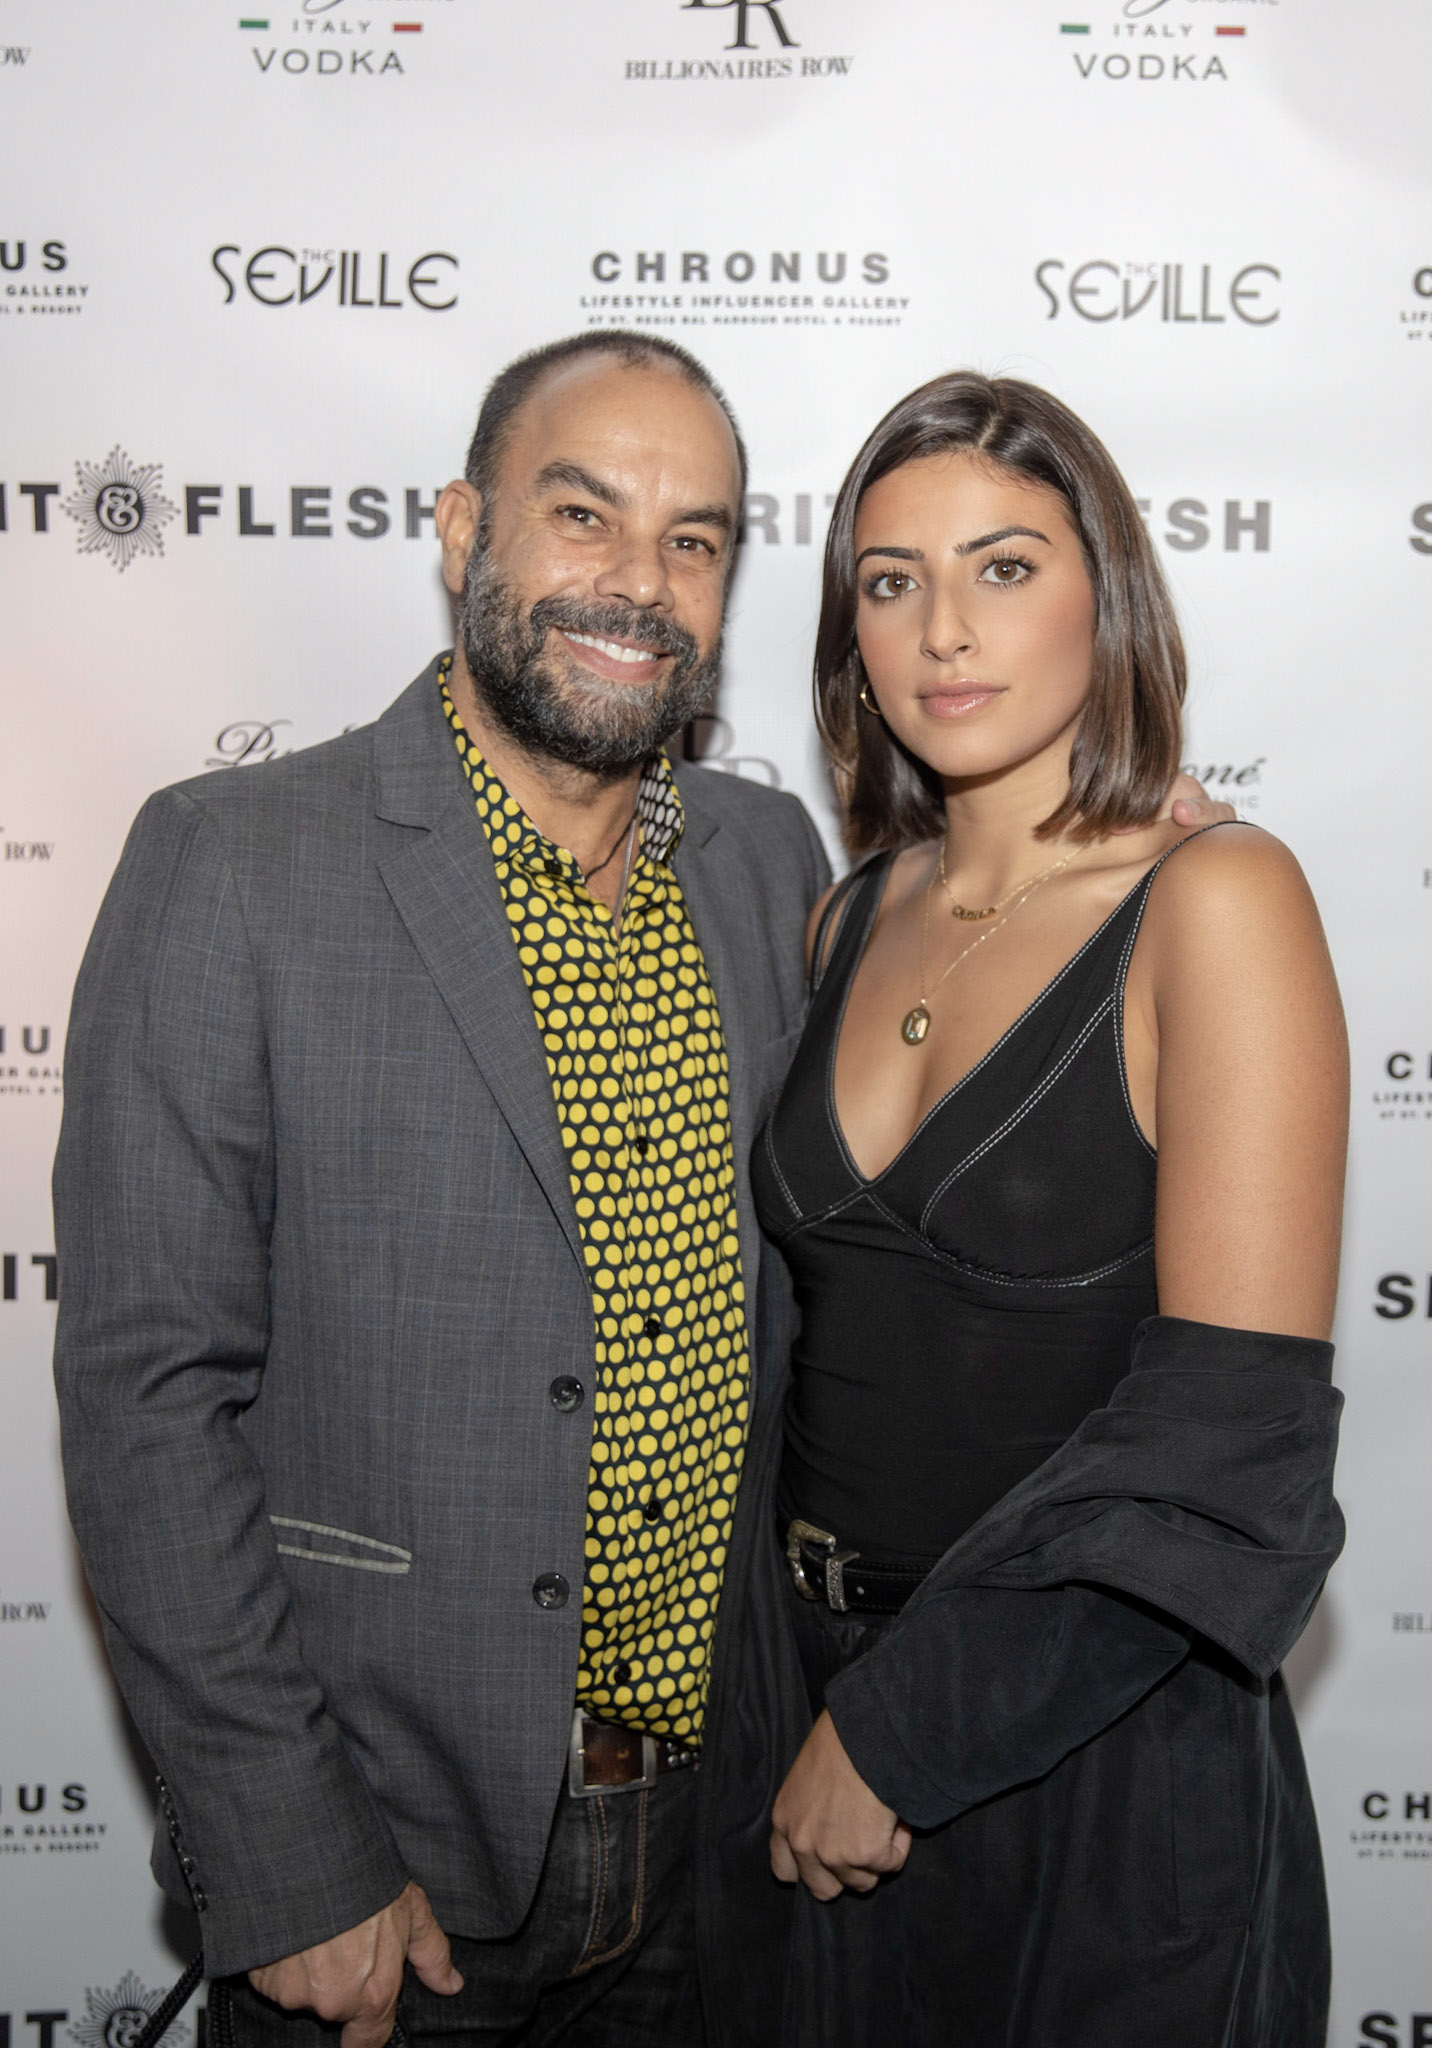 Spirit & Flesh Magazine Jussie Smollett cover event, Antonio Navas & Camilla Navas by Kenneth de la Torre